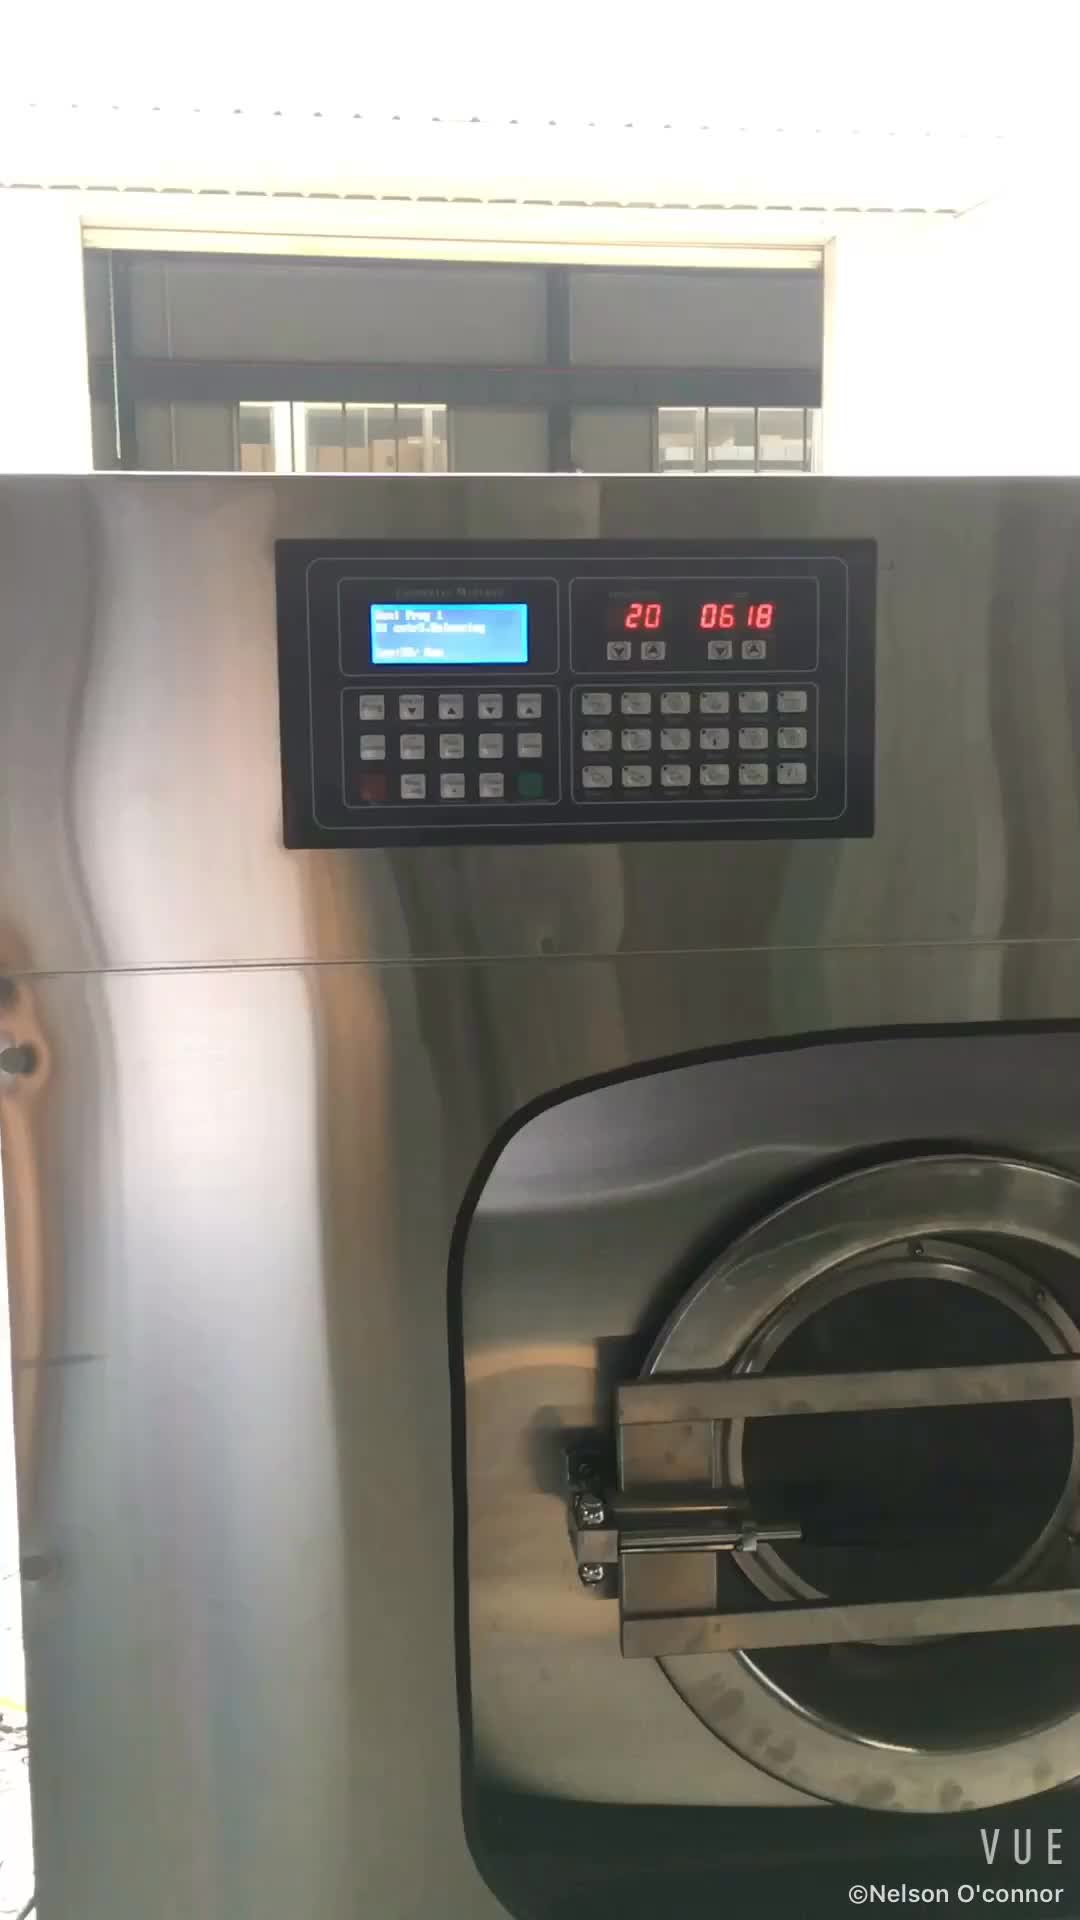 Laundry washing machine industrial